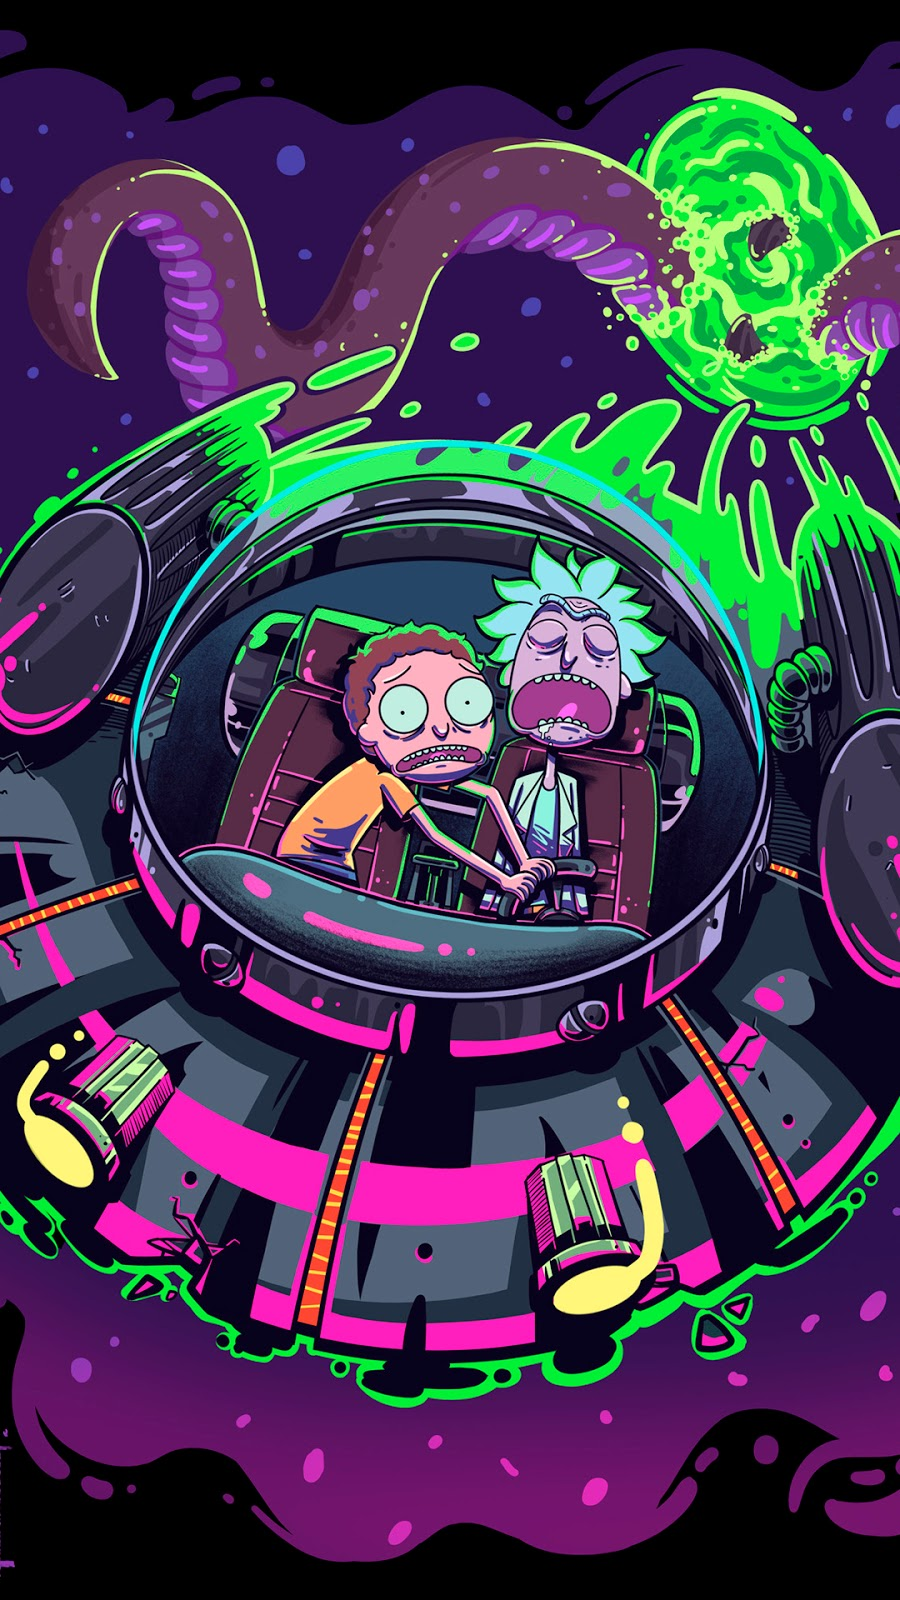 Rick and Morty Background Wallpaper